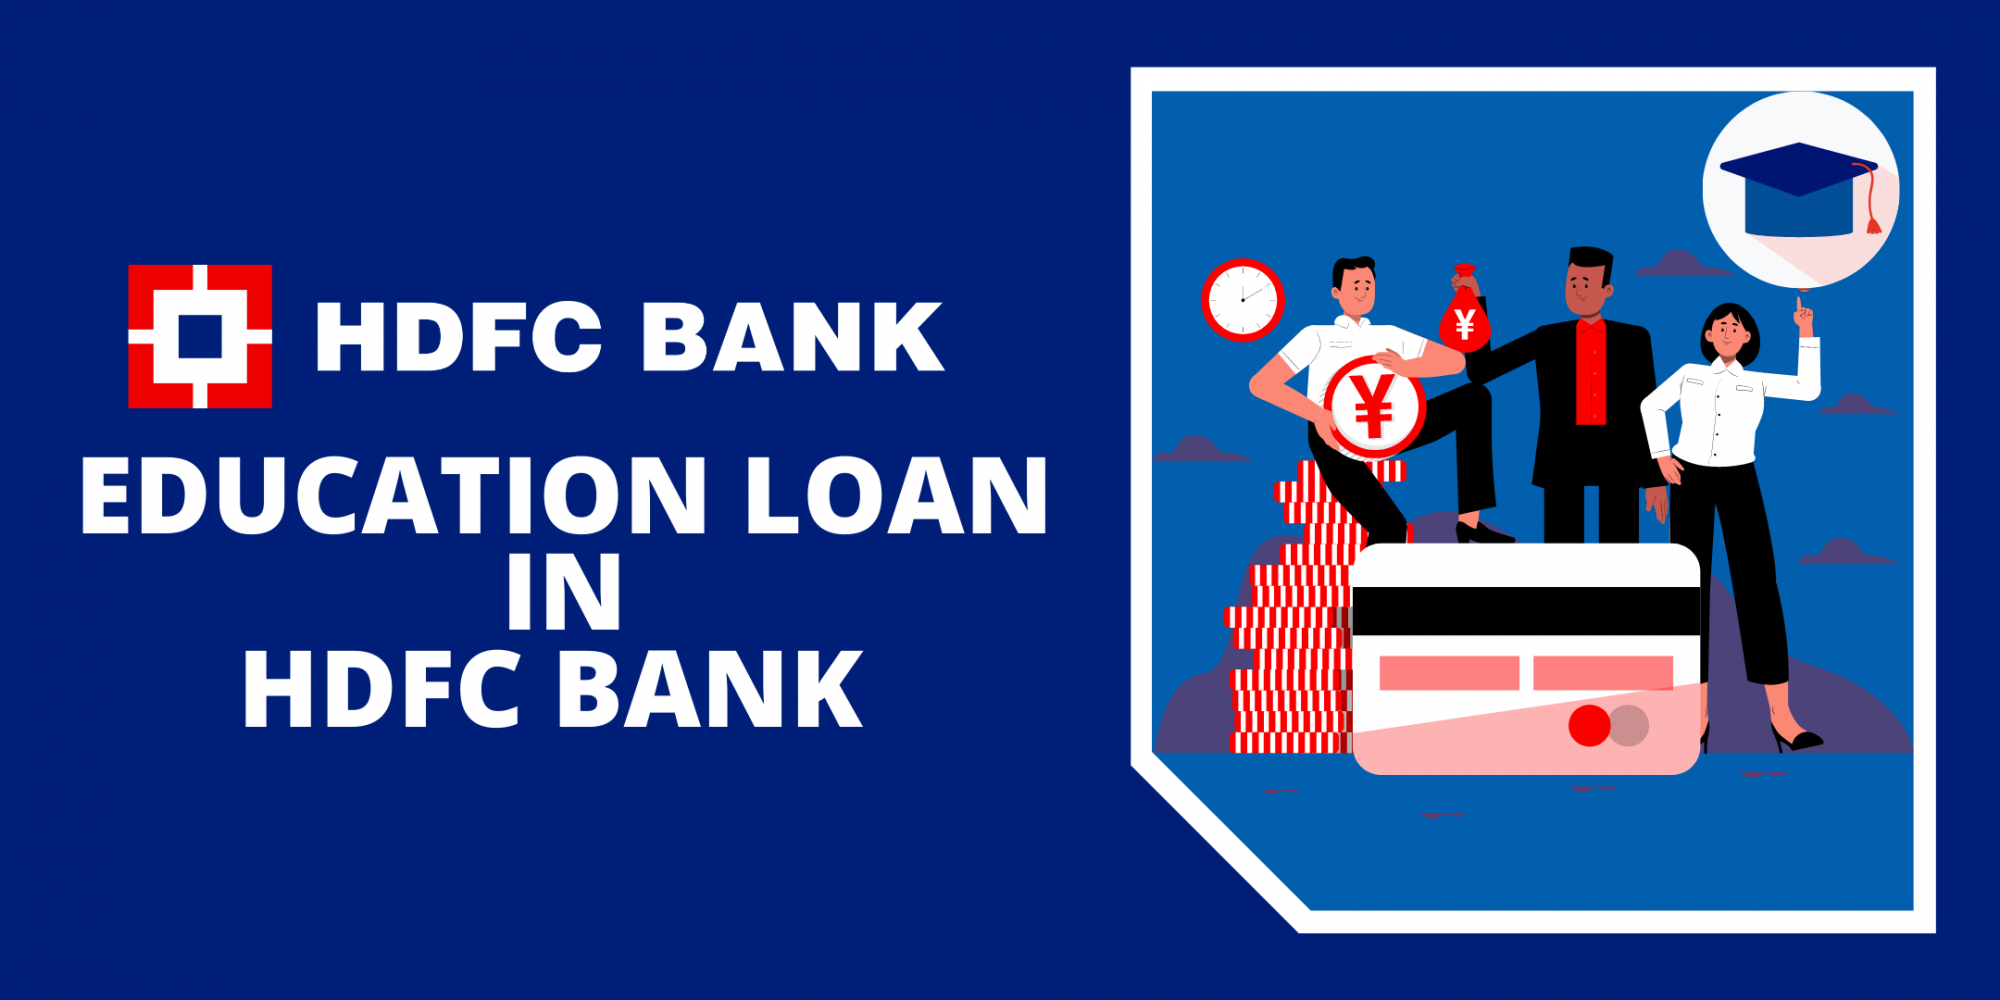 hdfc-bank-education-loan